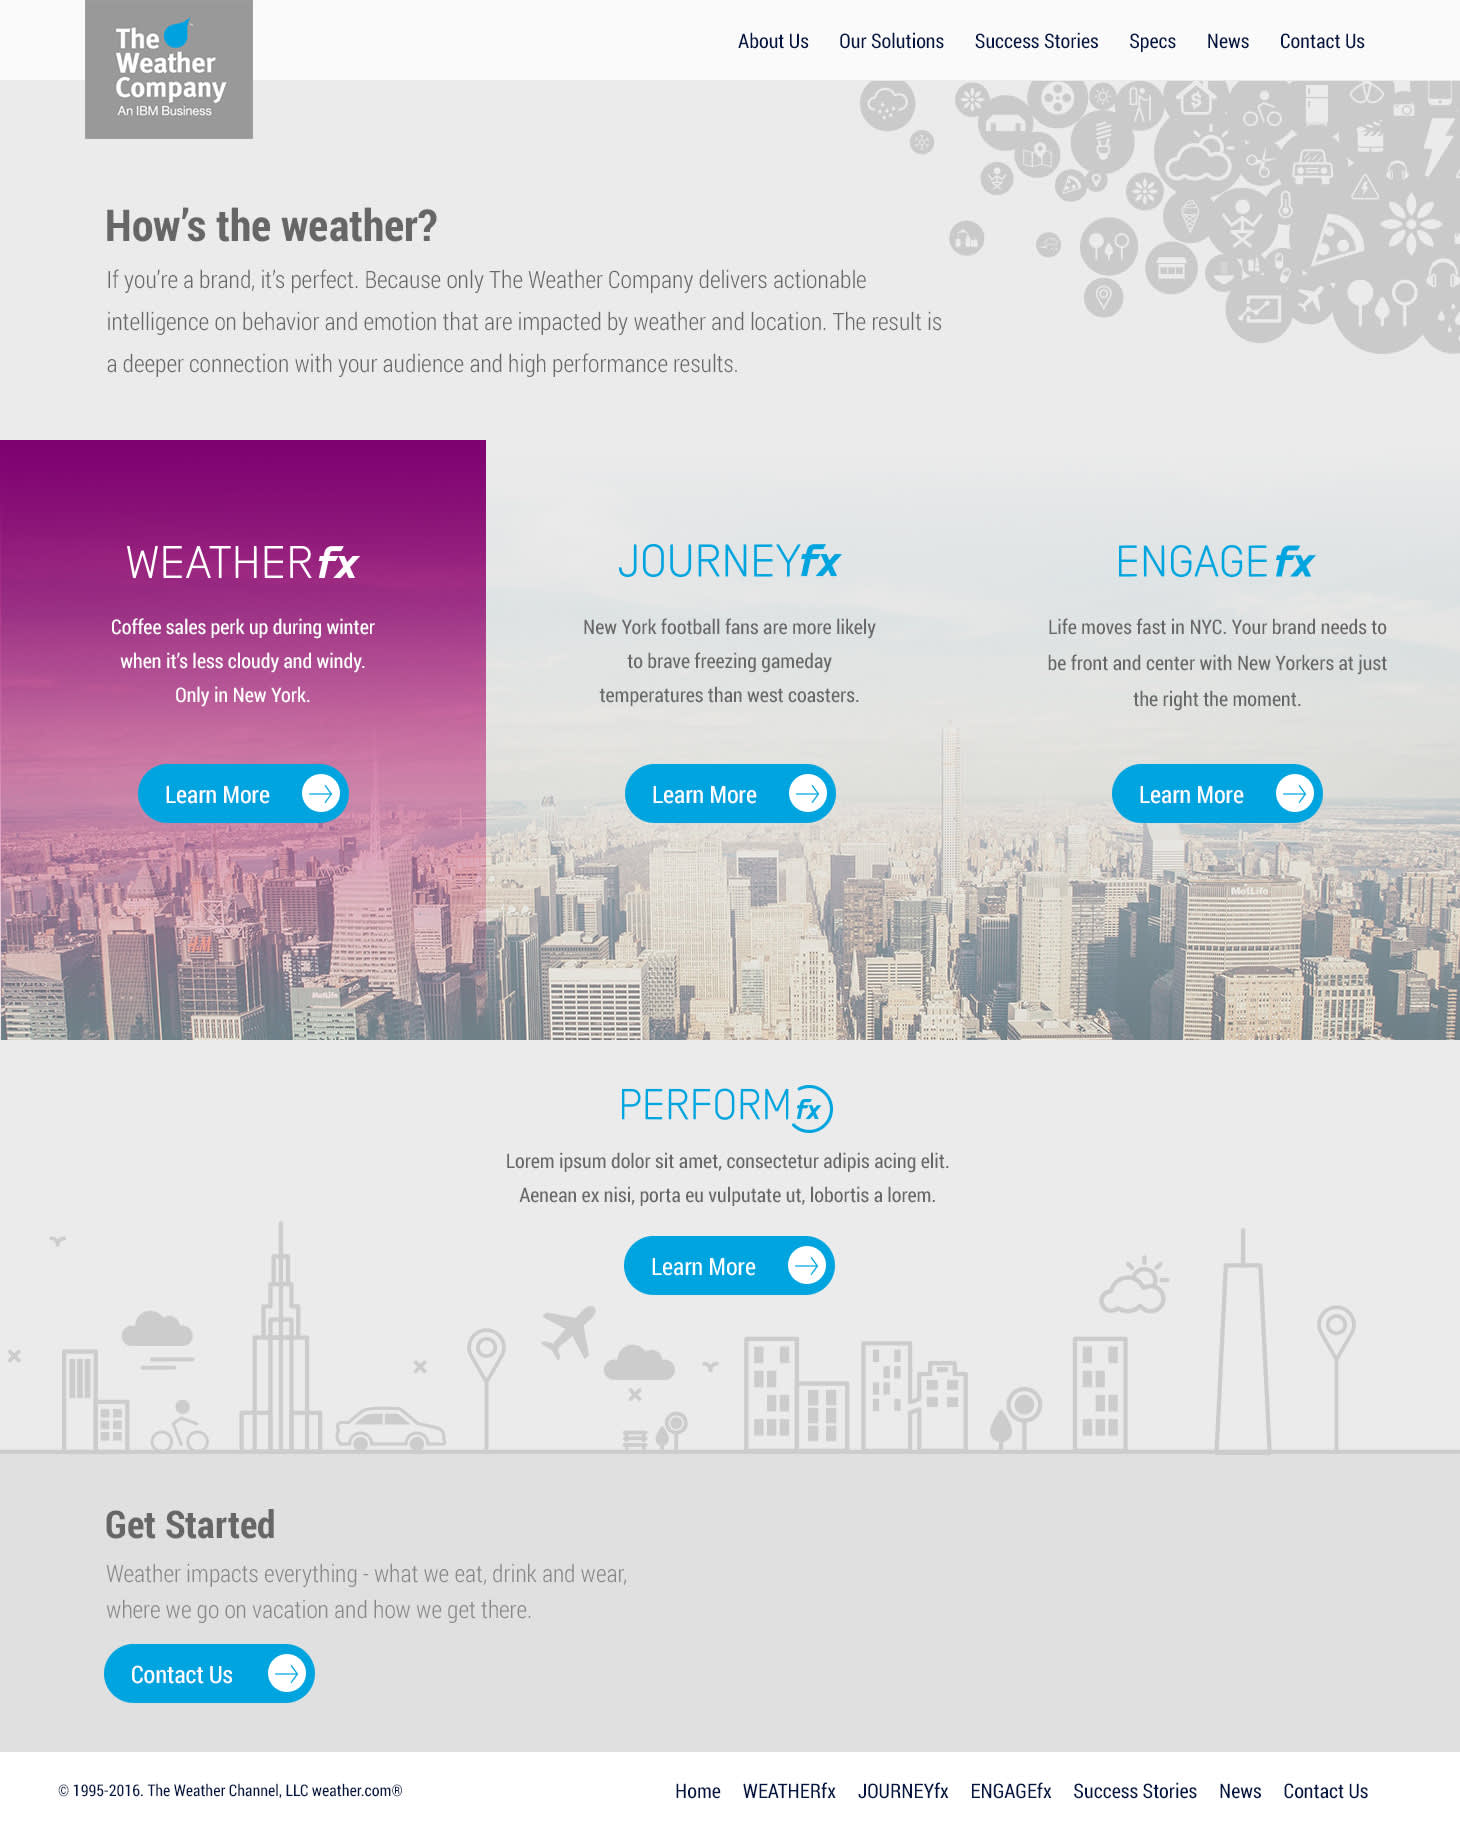 The Weather Company: Media Kit Website